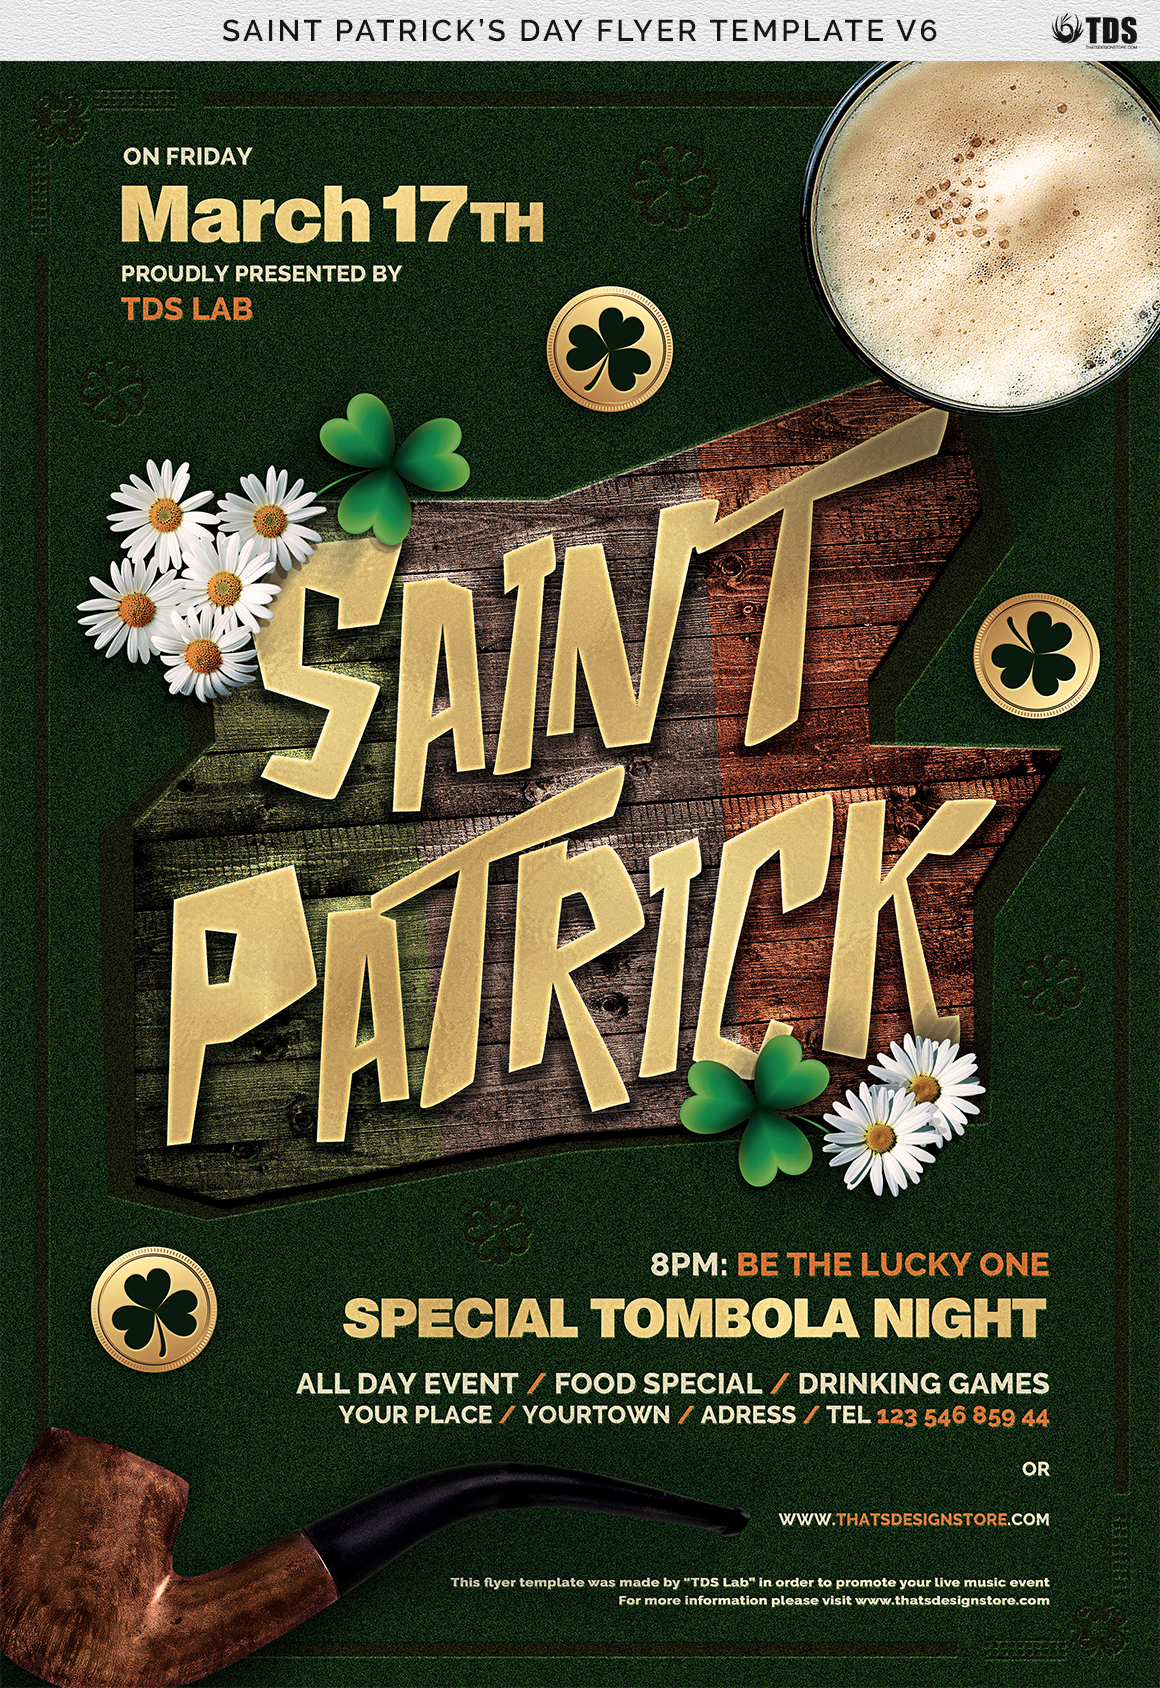 Saint Patricks Day Flyer Template V6 example image 7